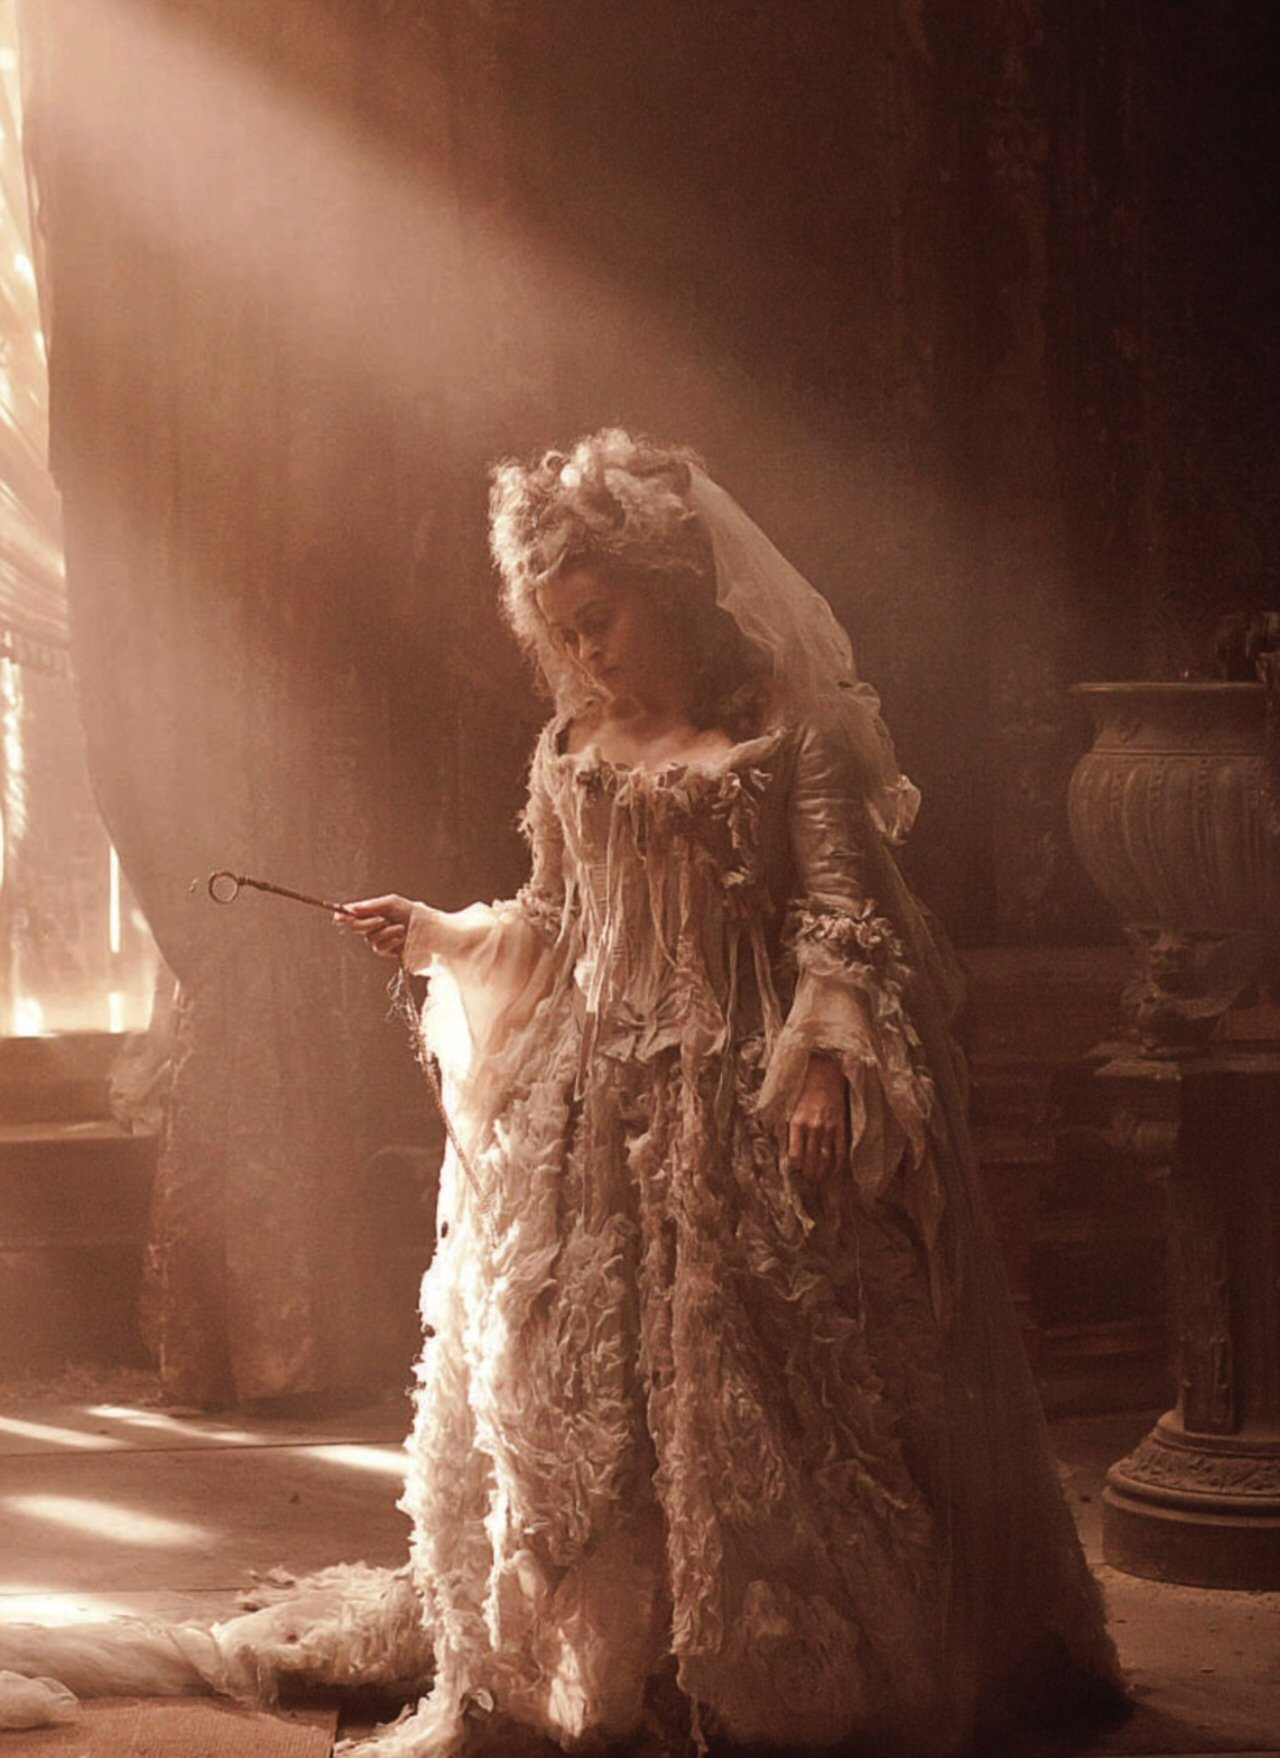 miss Great havisham expectations